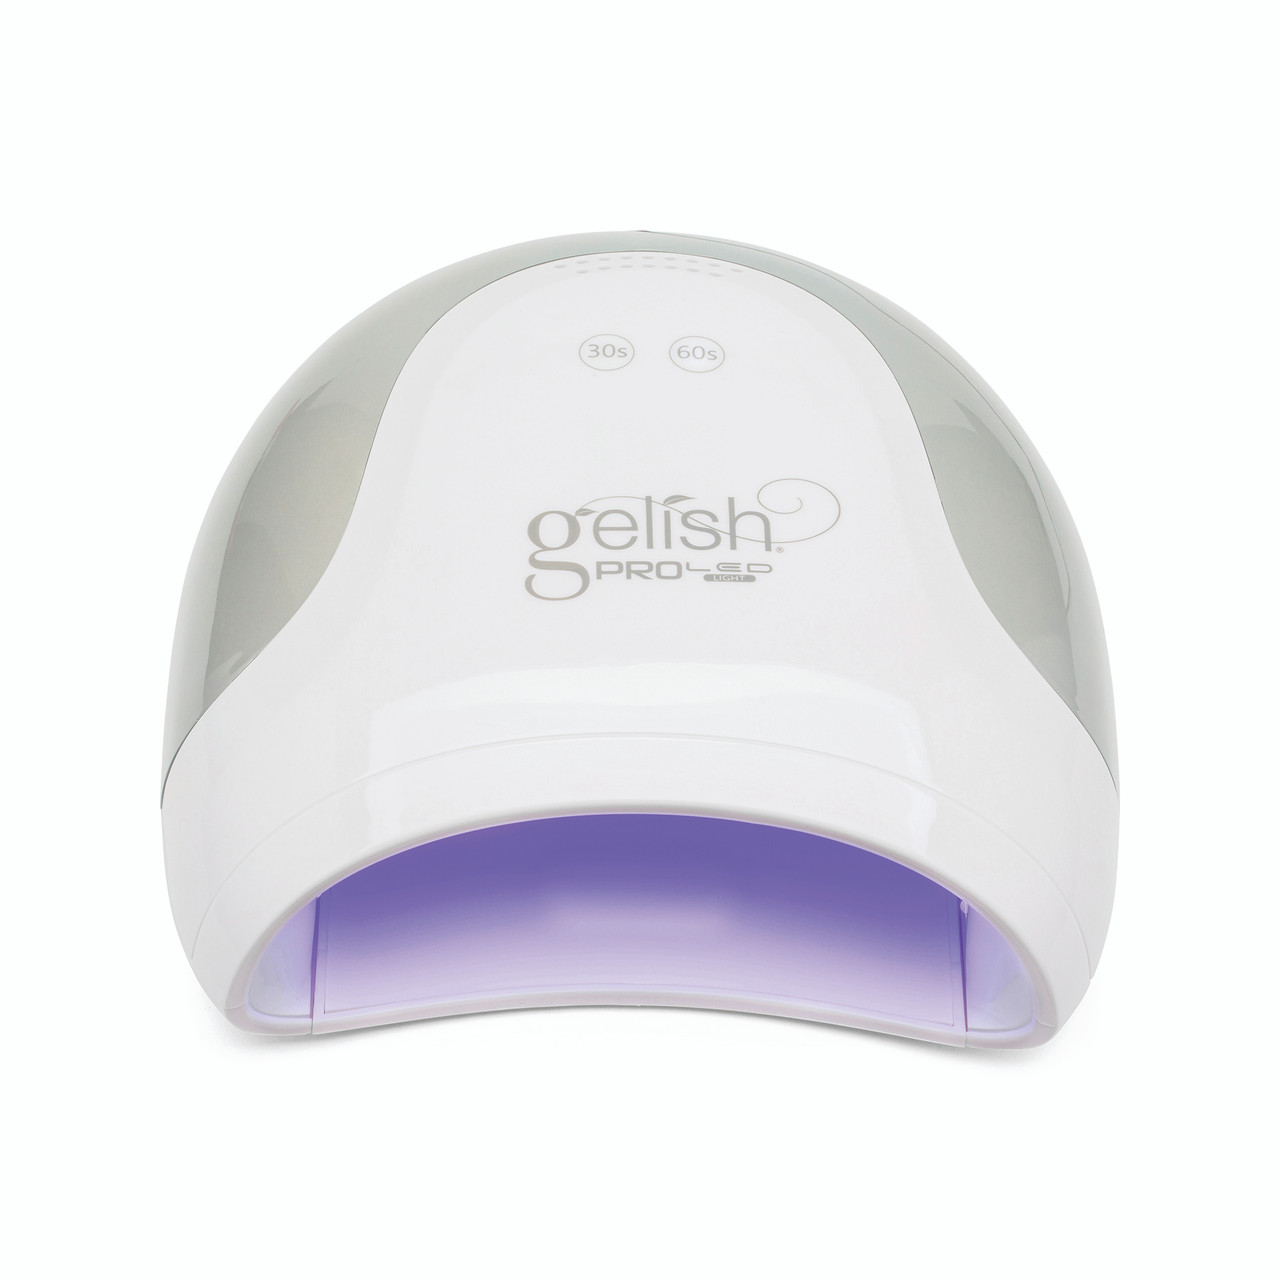 Gelish 30 Watt Pro LED Light